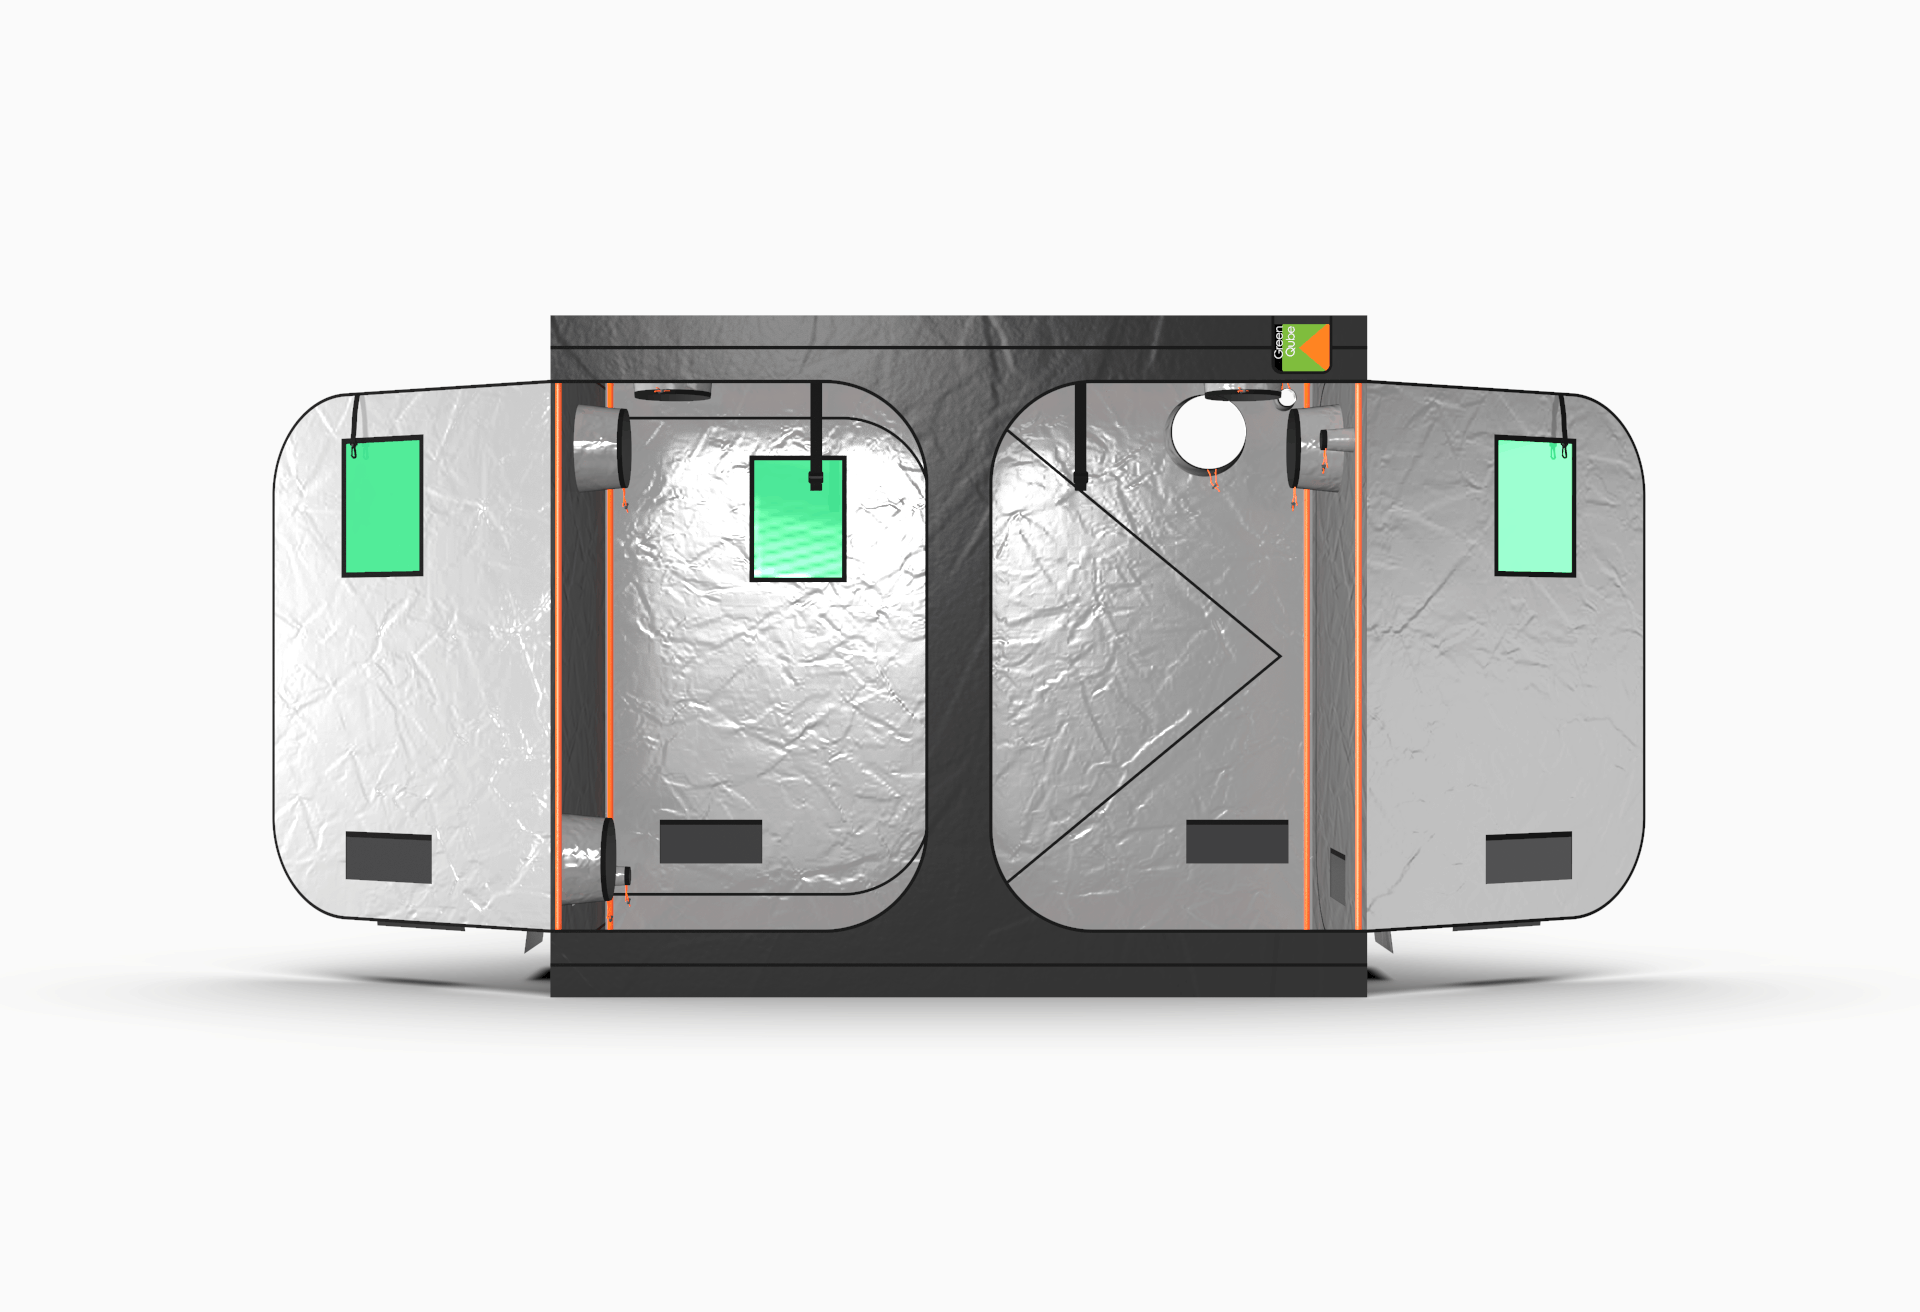 Grow Tent by Green Qube - GQ1224L Front